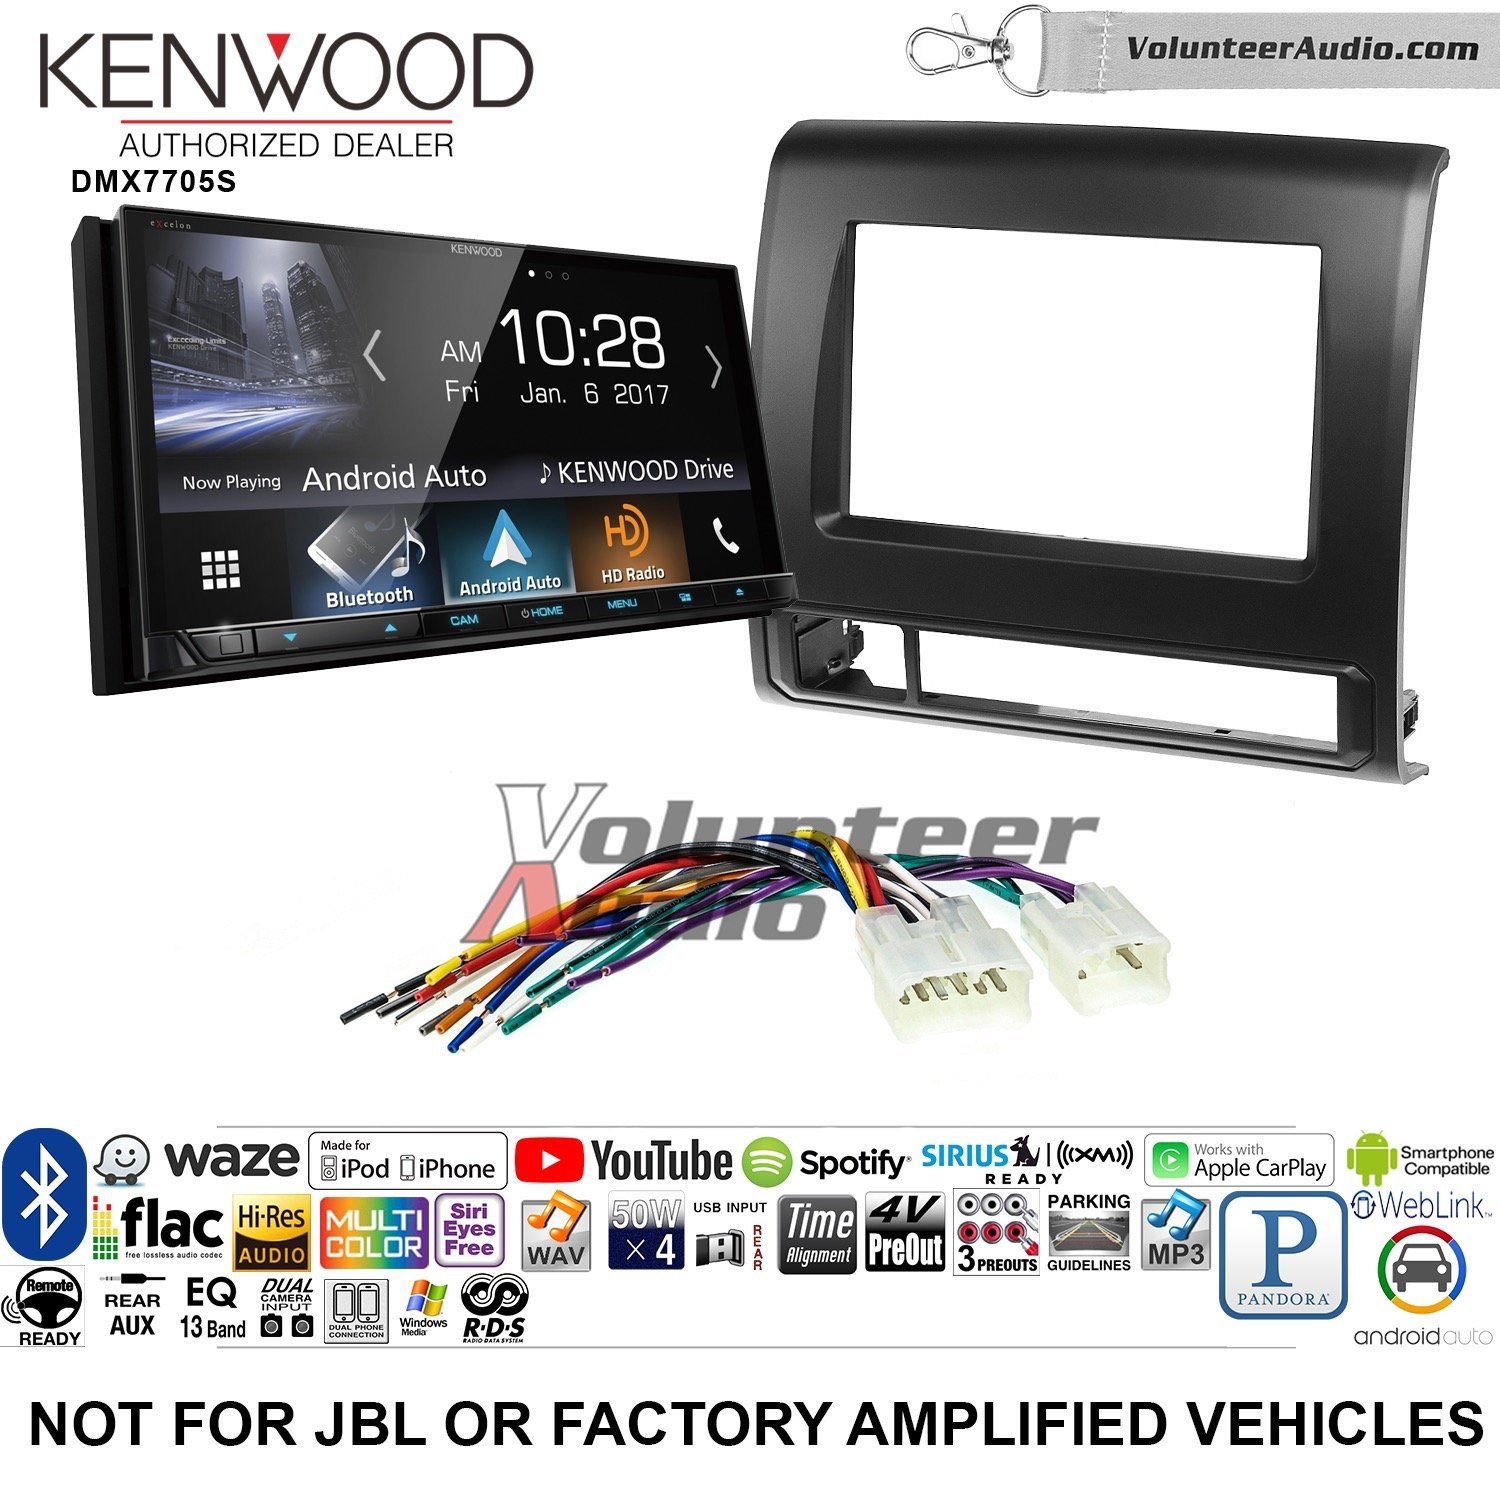 Volunteer Audio Kenwood DMX7705S Double Din Radio Install Kit with Apple CarPlay Android Auto Bluetooth Fits 2012-2015 Non Amplified Toyota Tacoma